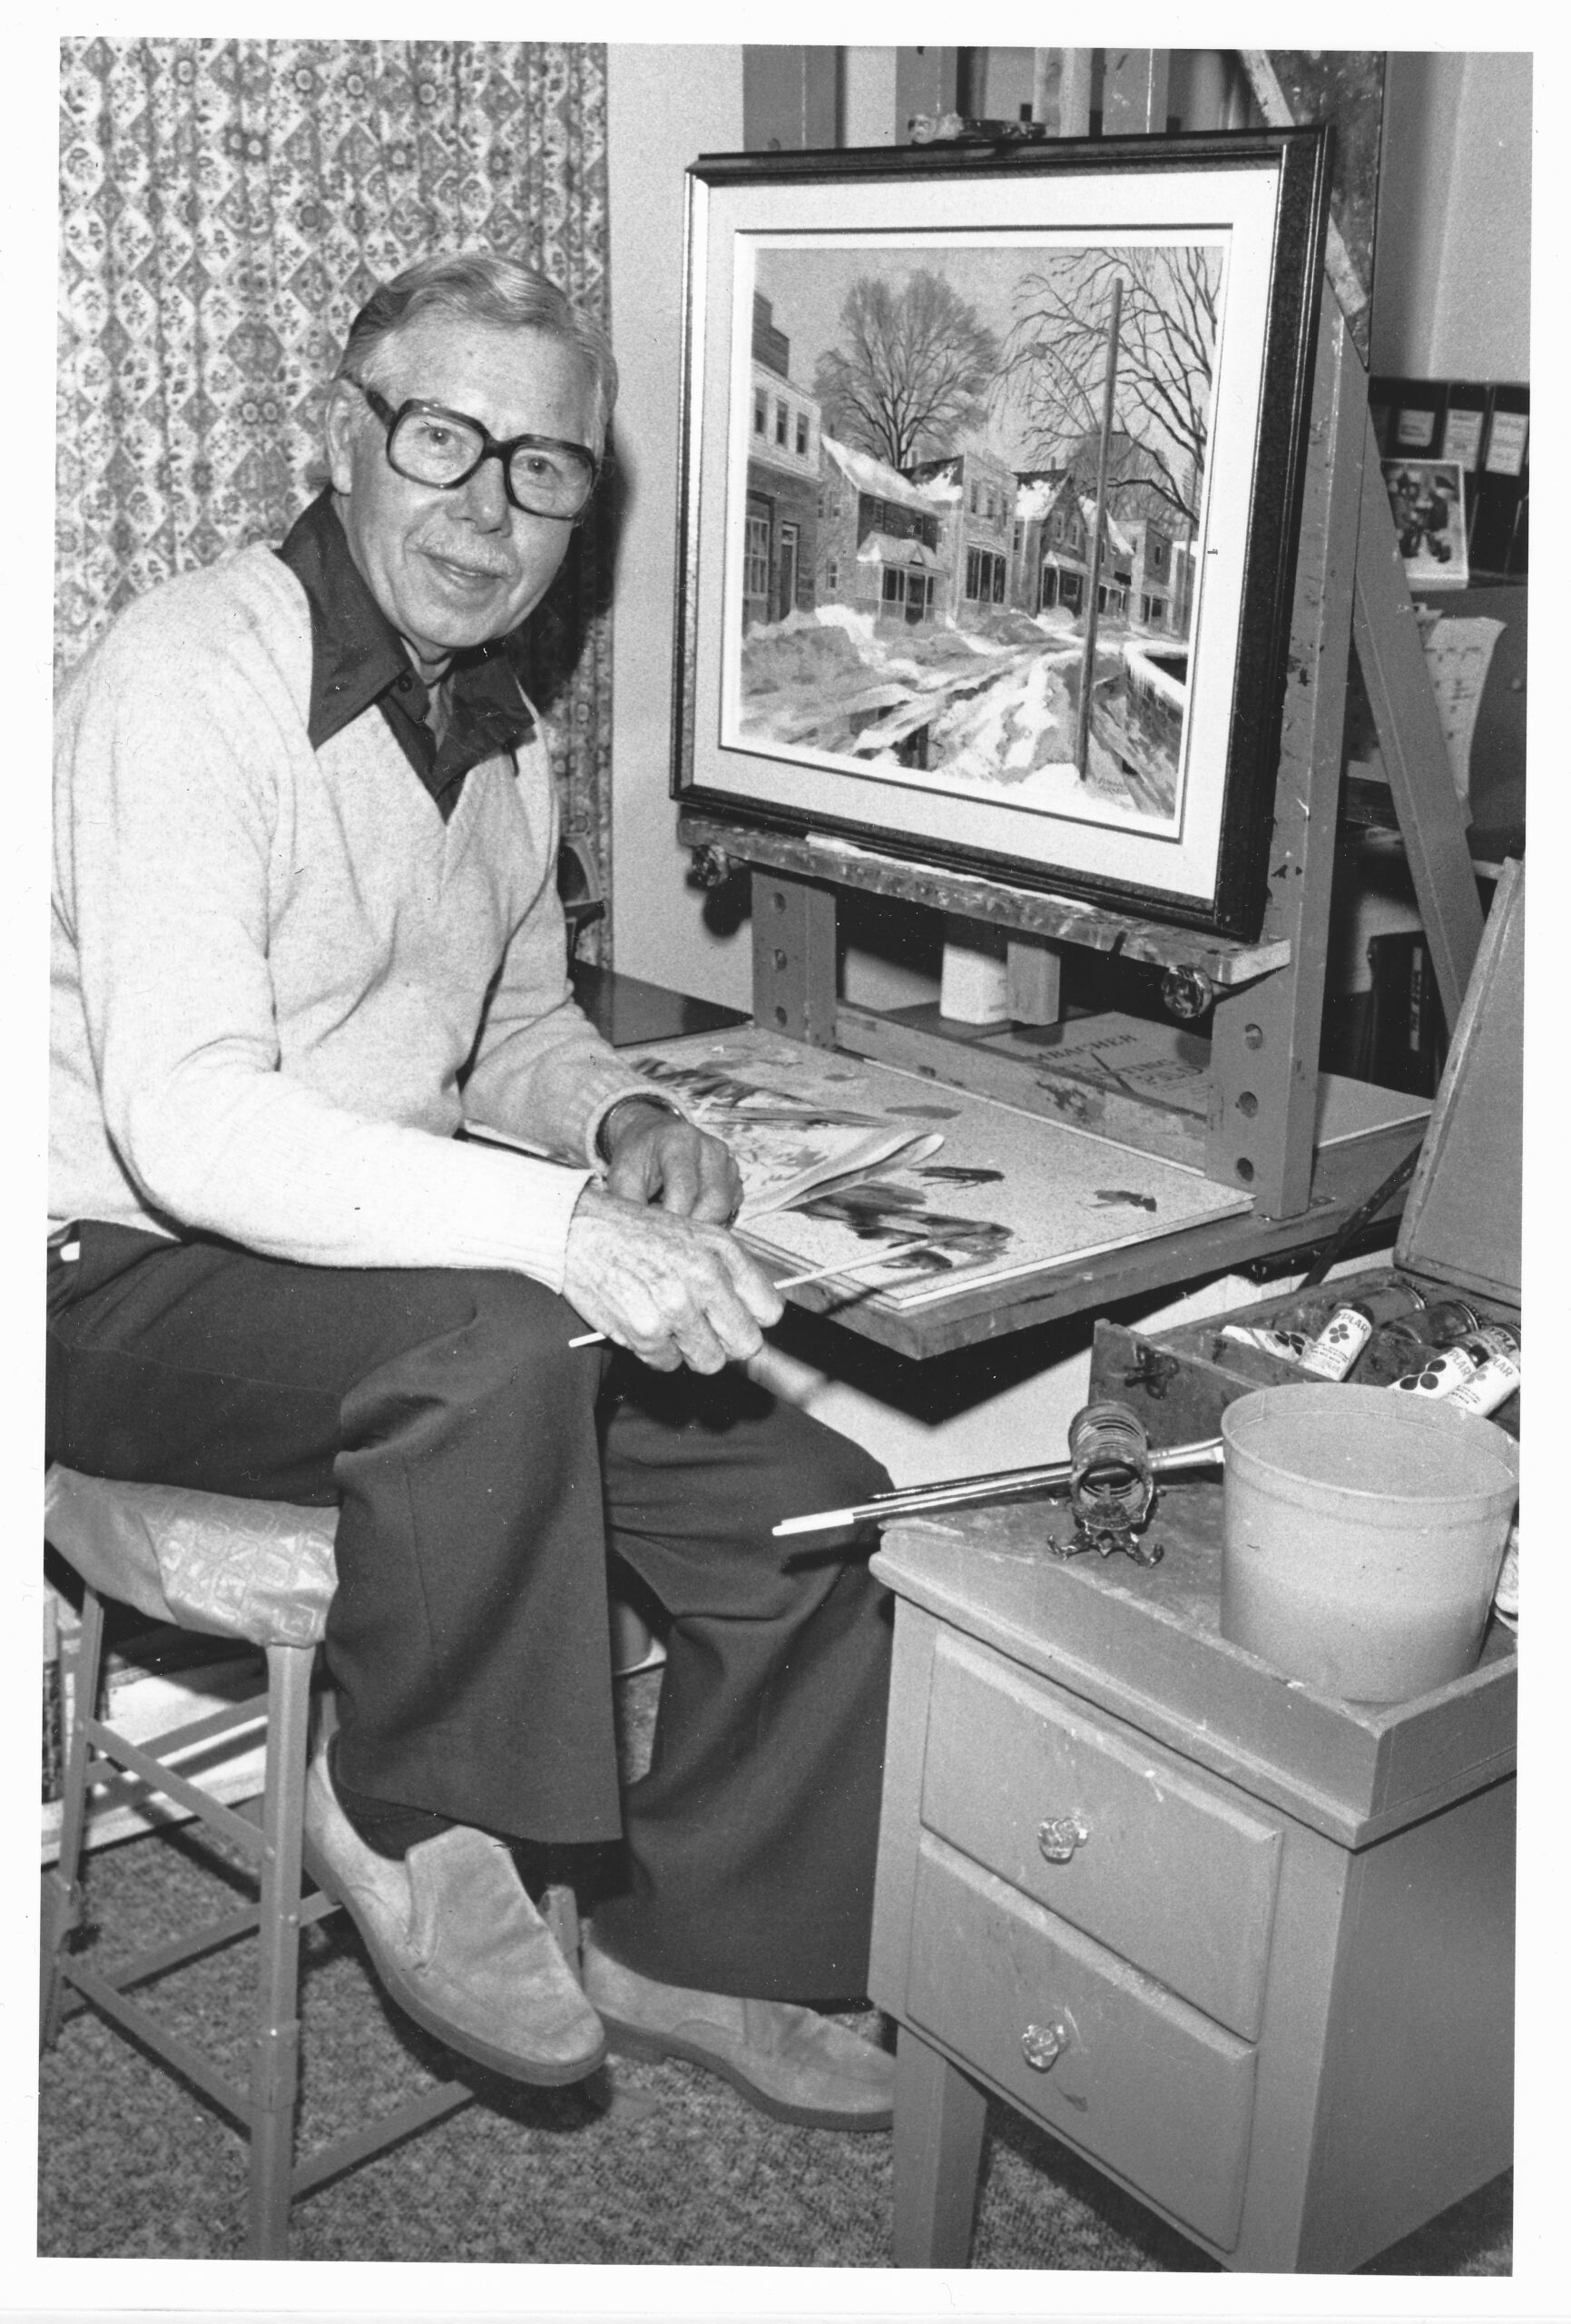 C:\Users\Robert\Documents\CARTOONING ILLUSTRATION ANIMATION\IMAGE OF PERSON\F\FURNESS Ed, retired and painting Nov 1981.jpg